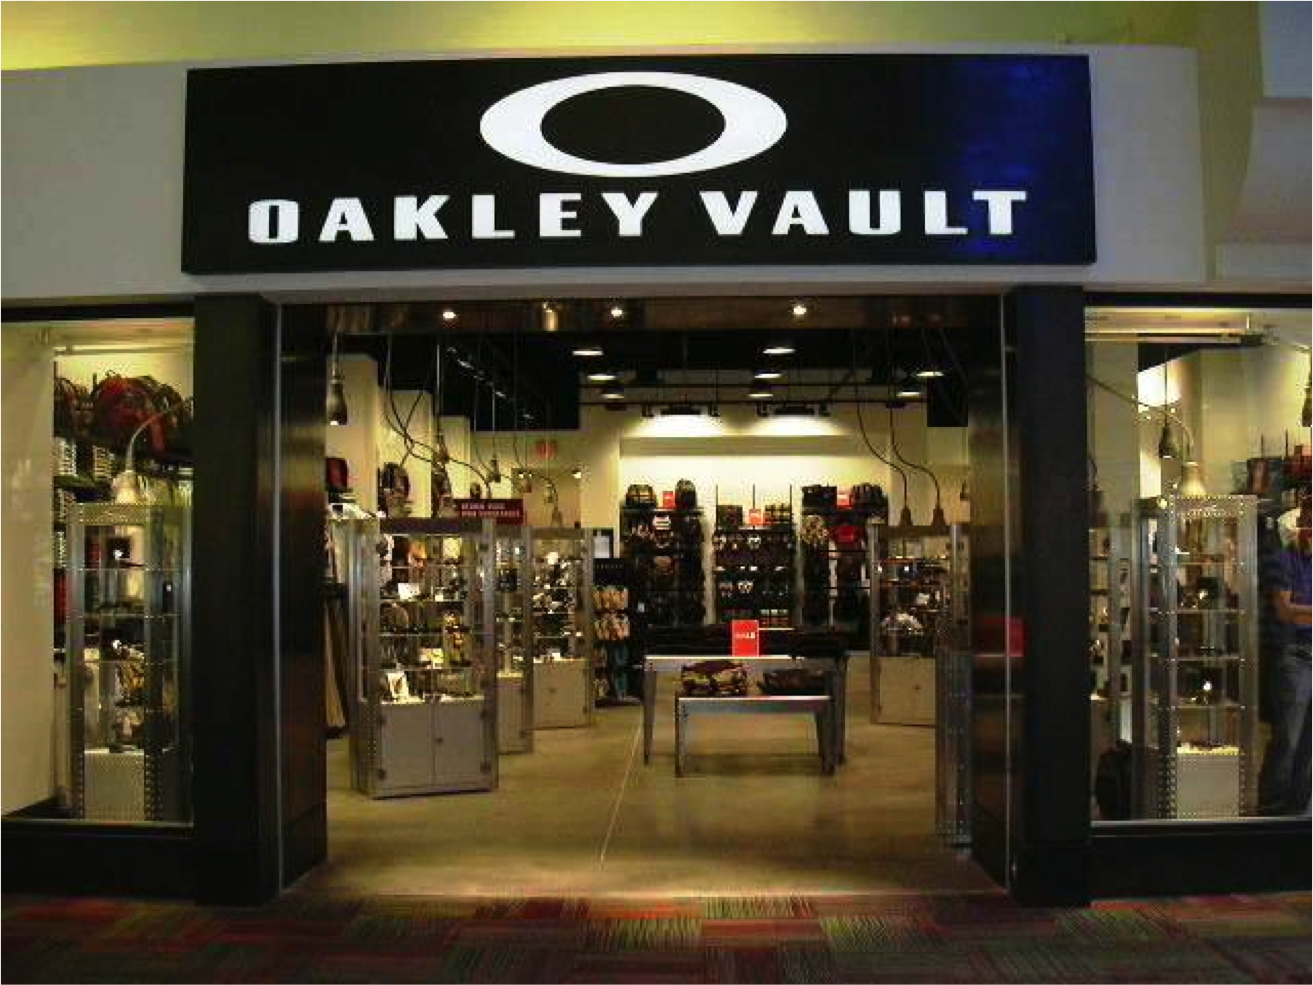 oakley outlet  Oakley Vault 5000 Arizona Mills Circle #279, Arizona Mills Tempe ...